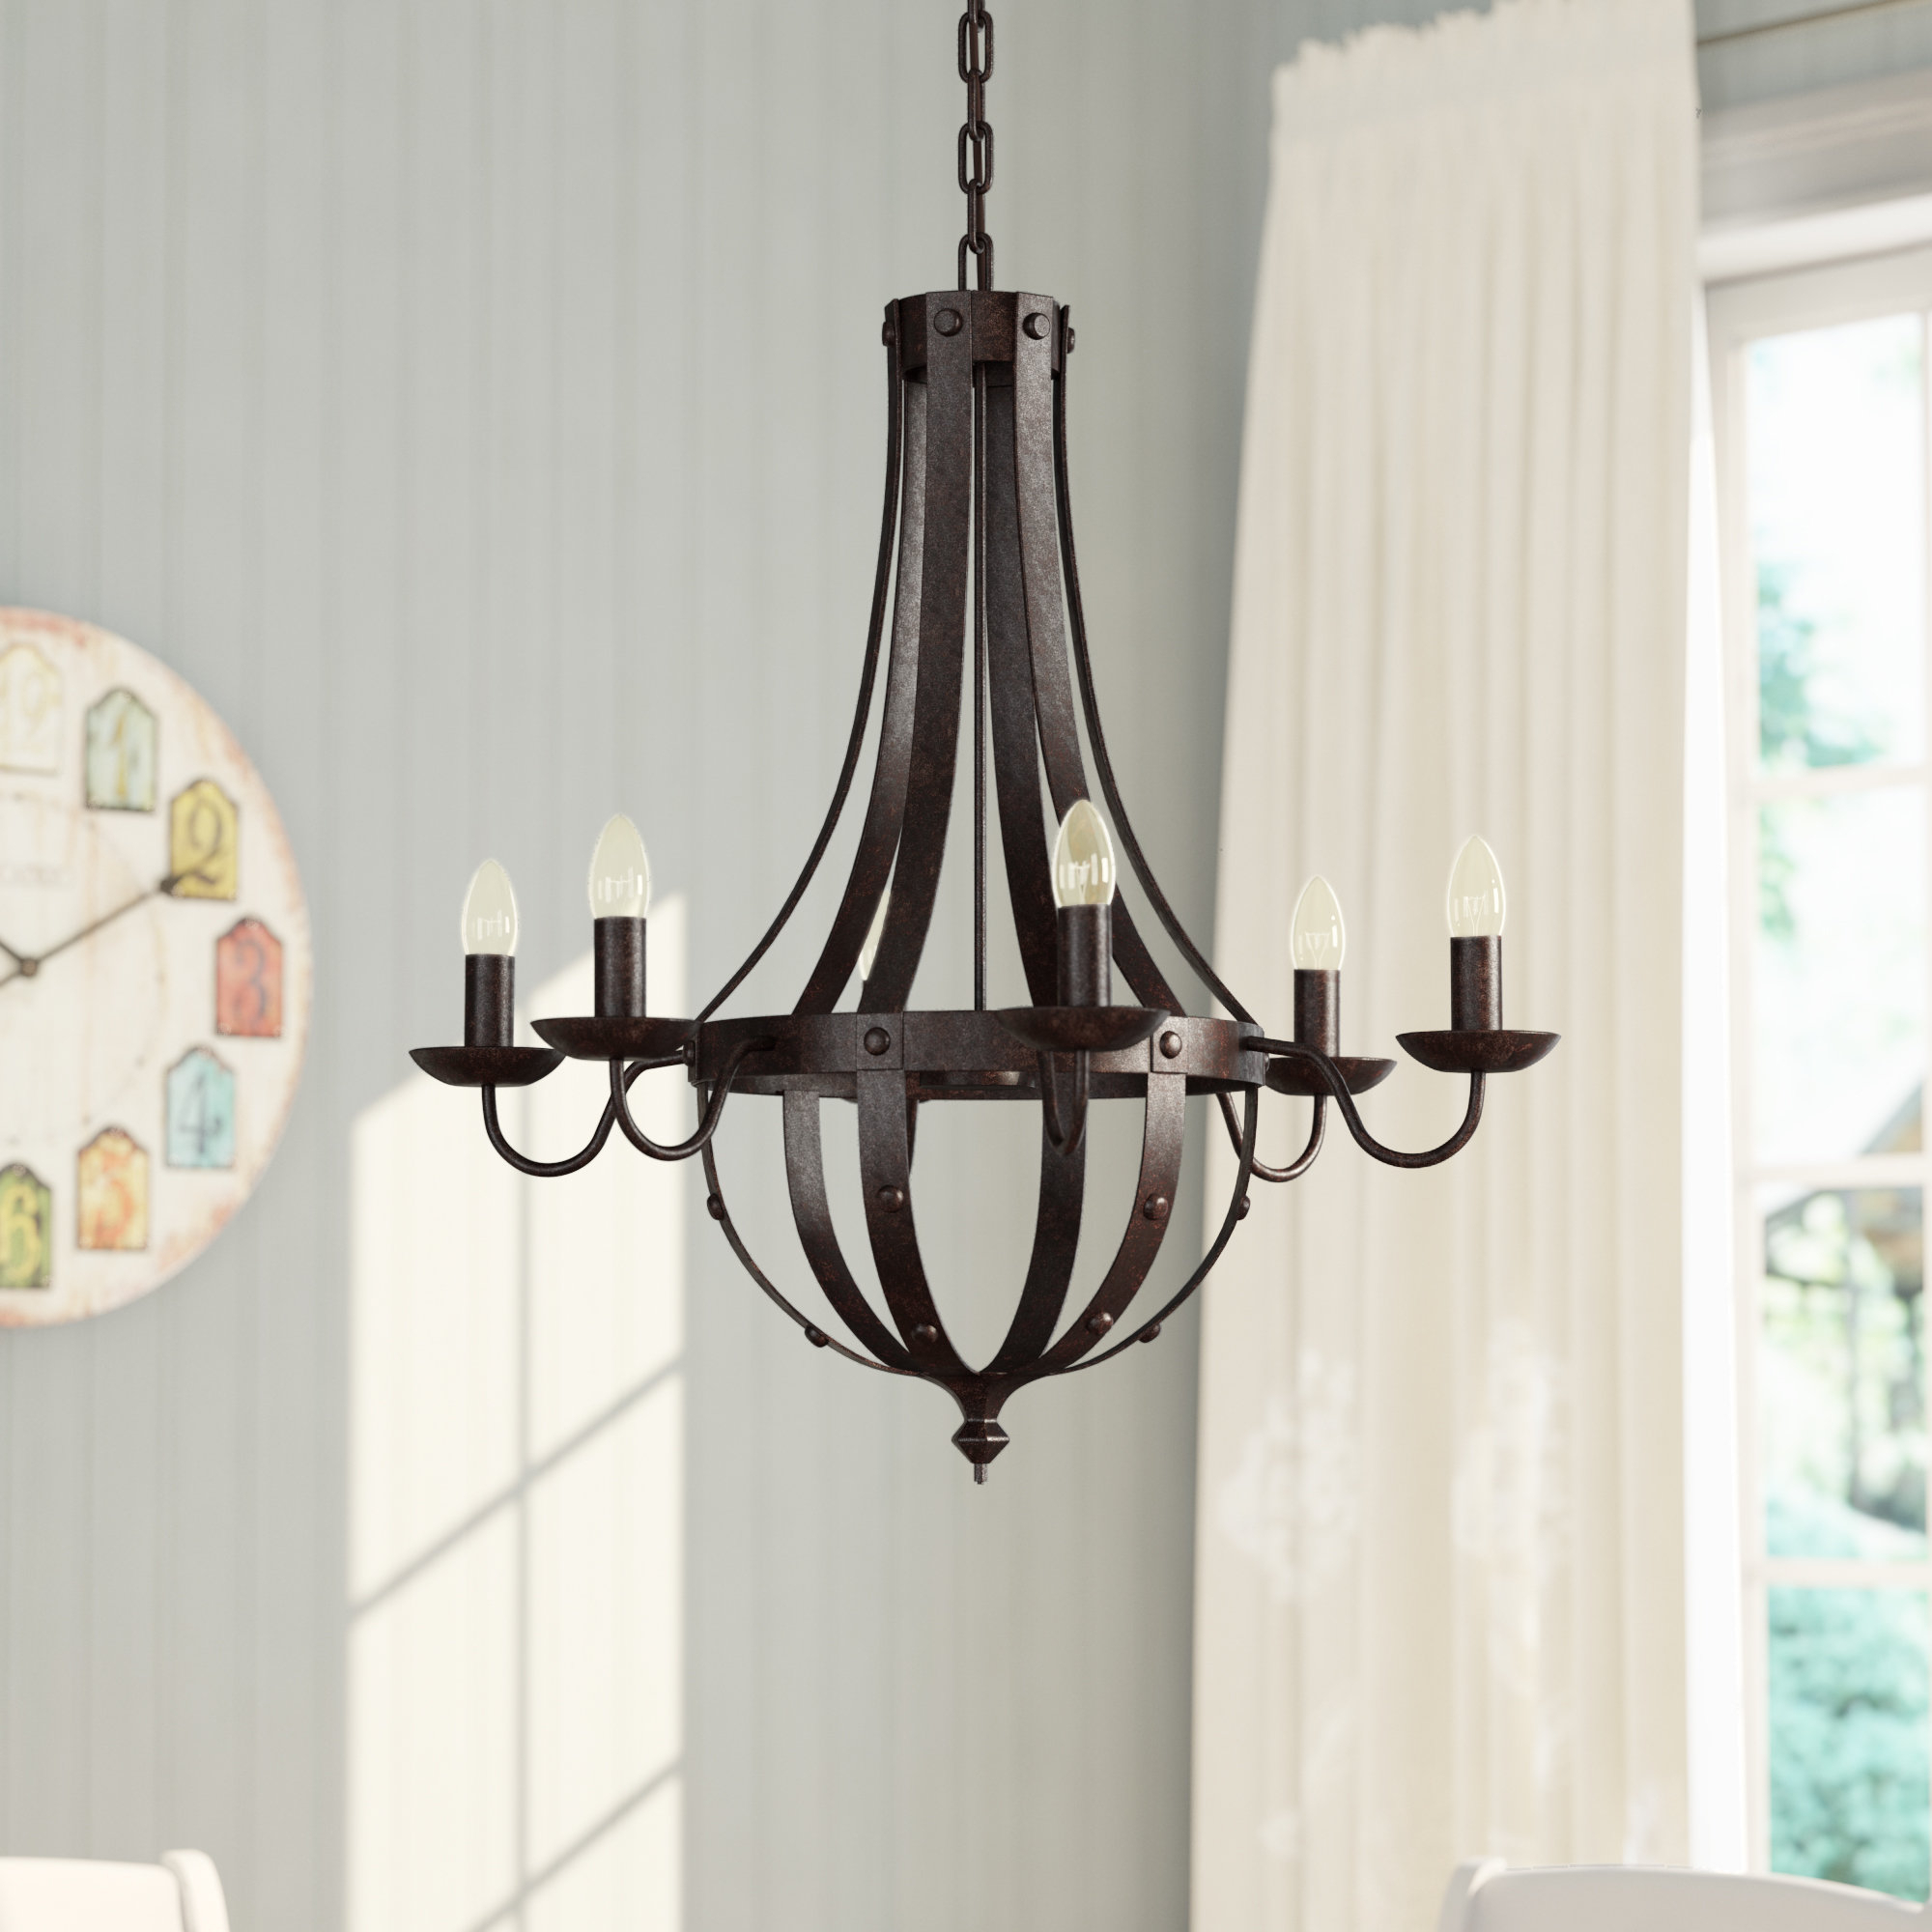 Black Empire Chandeliers You'll Love In 2019 | Wayfair In Kenna 5 Light Empire Chandeliers (View 18 of 30)